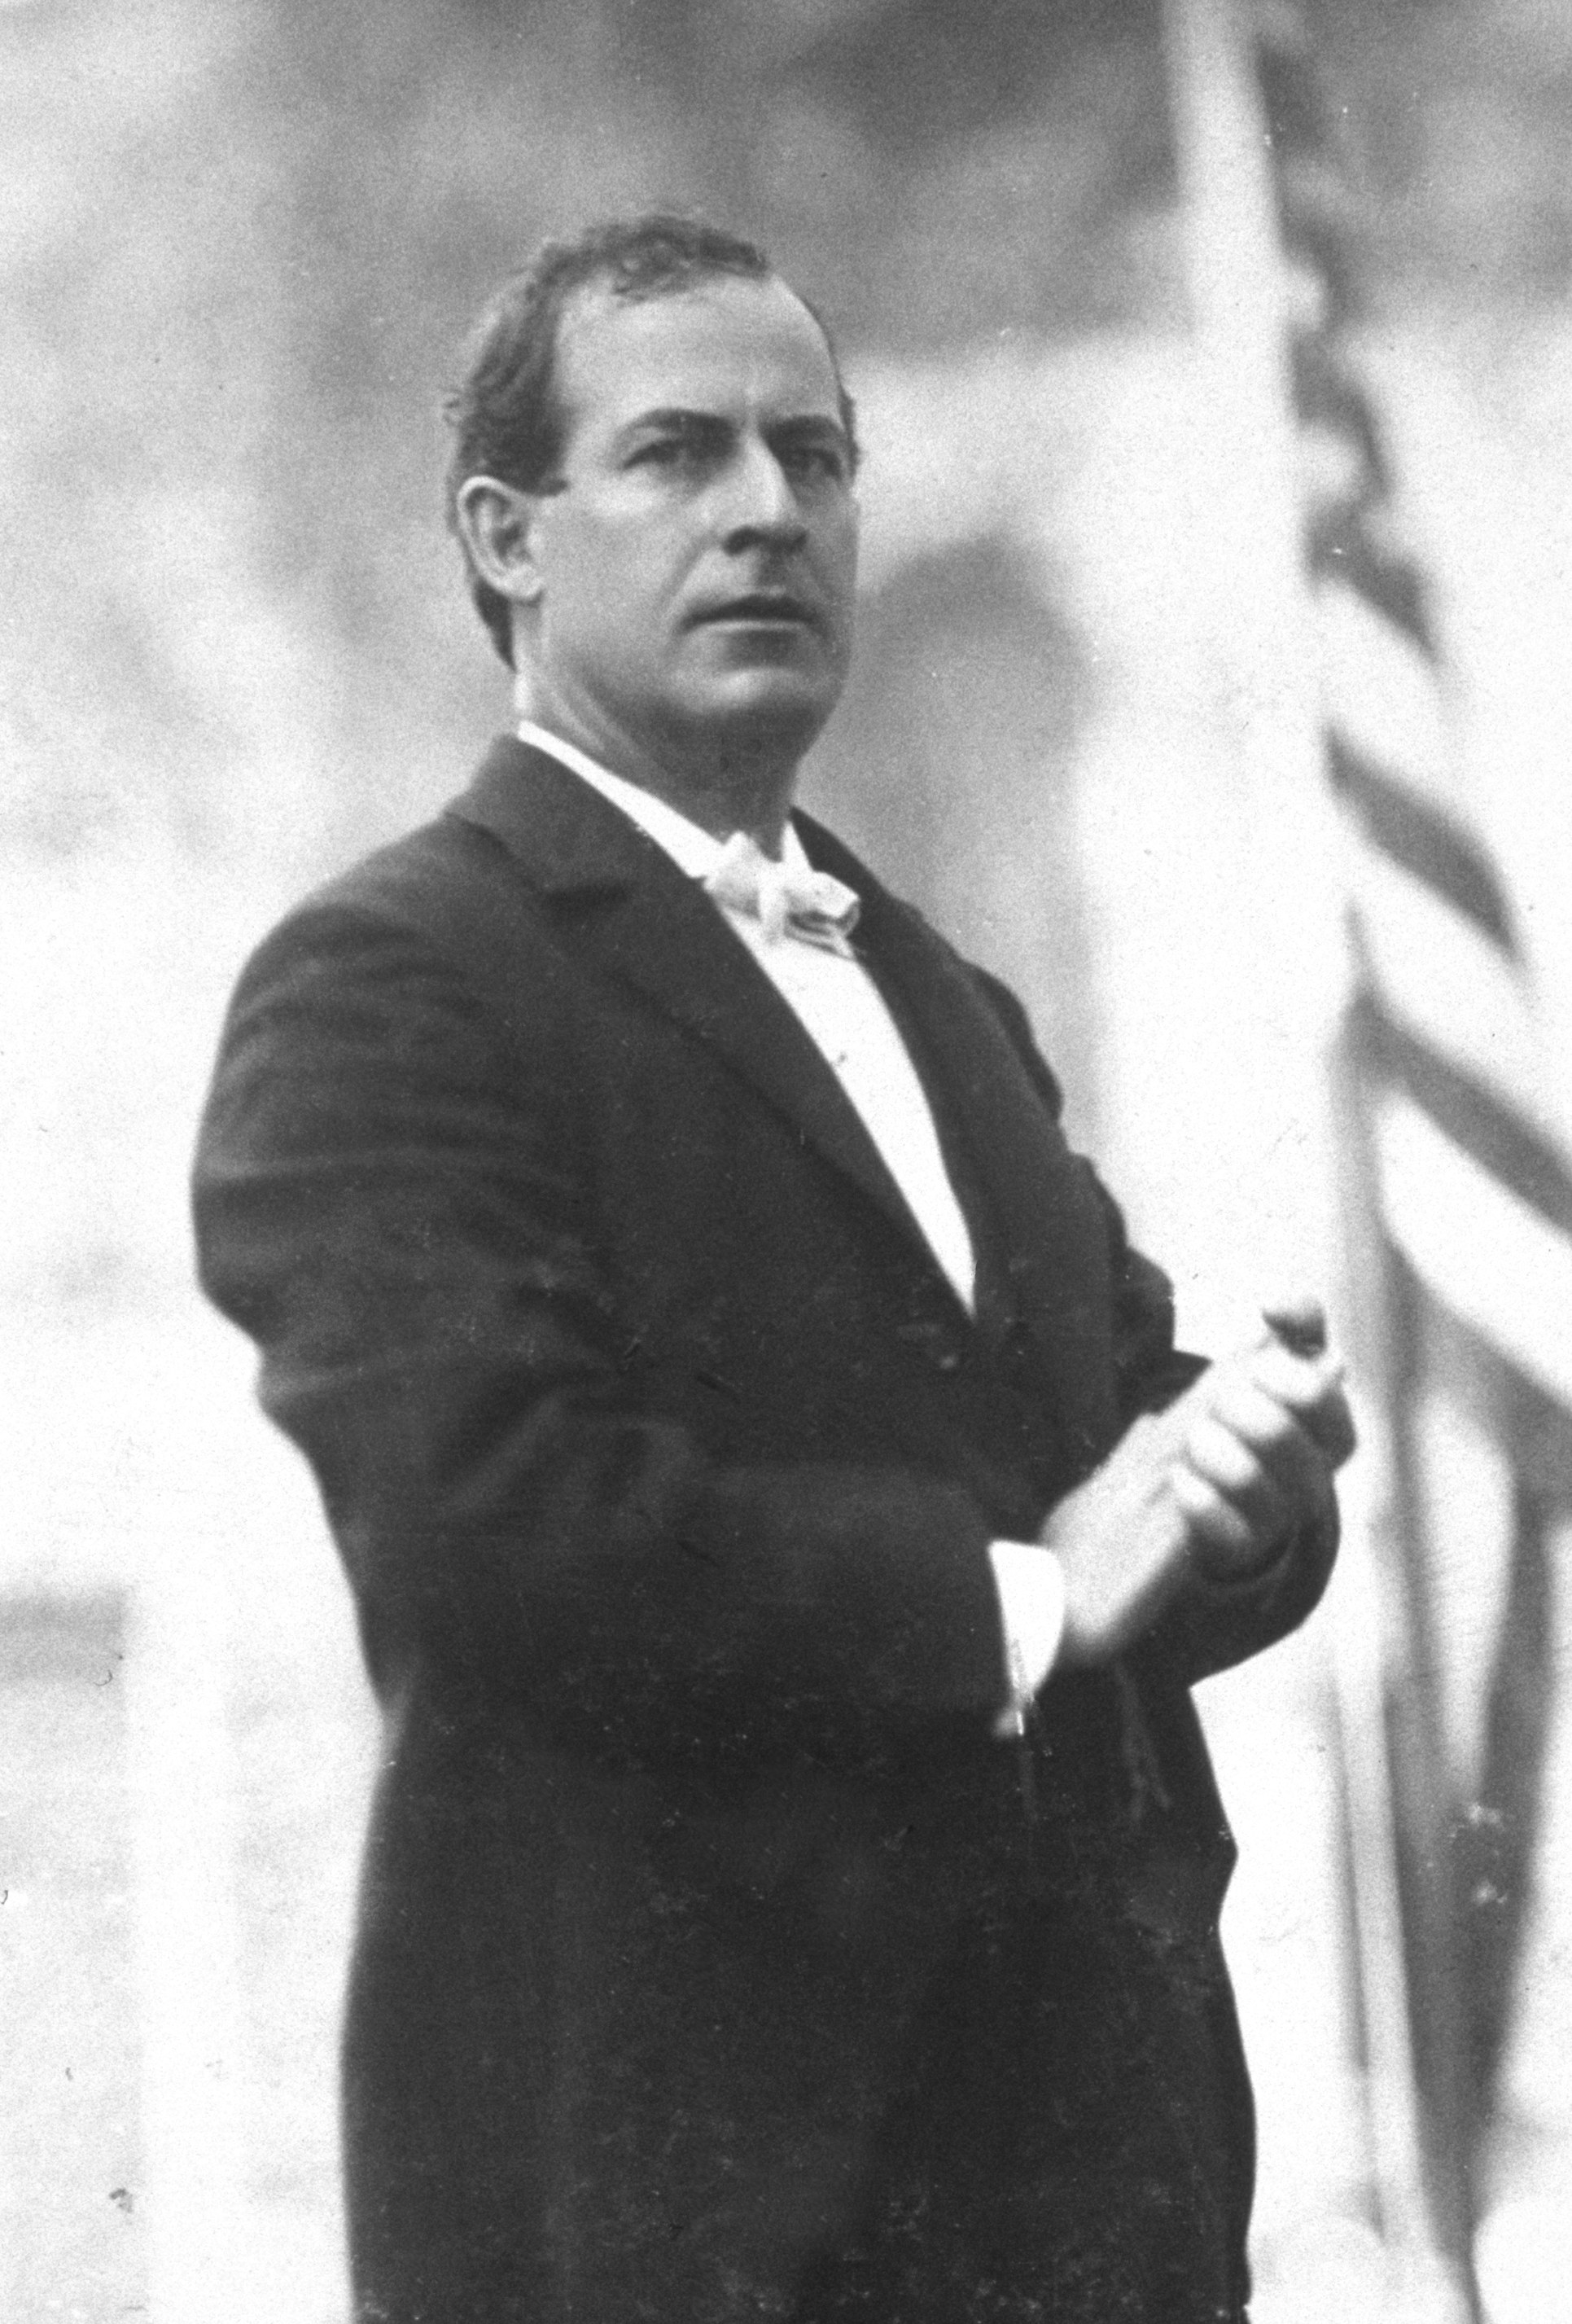 Bryan campaigning for President, October 1896.